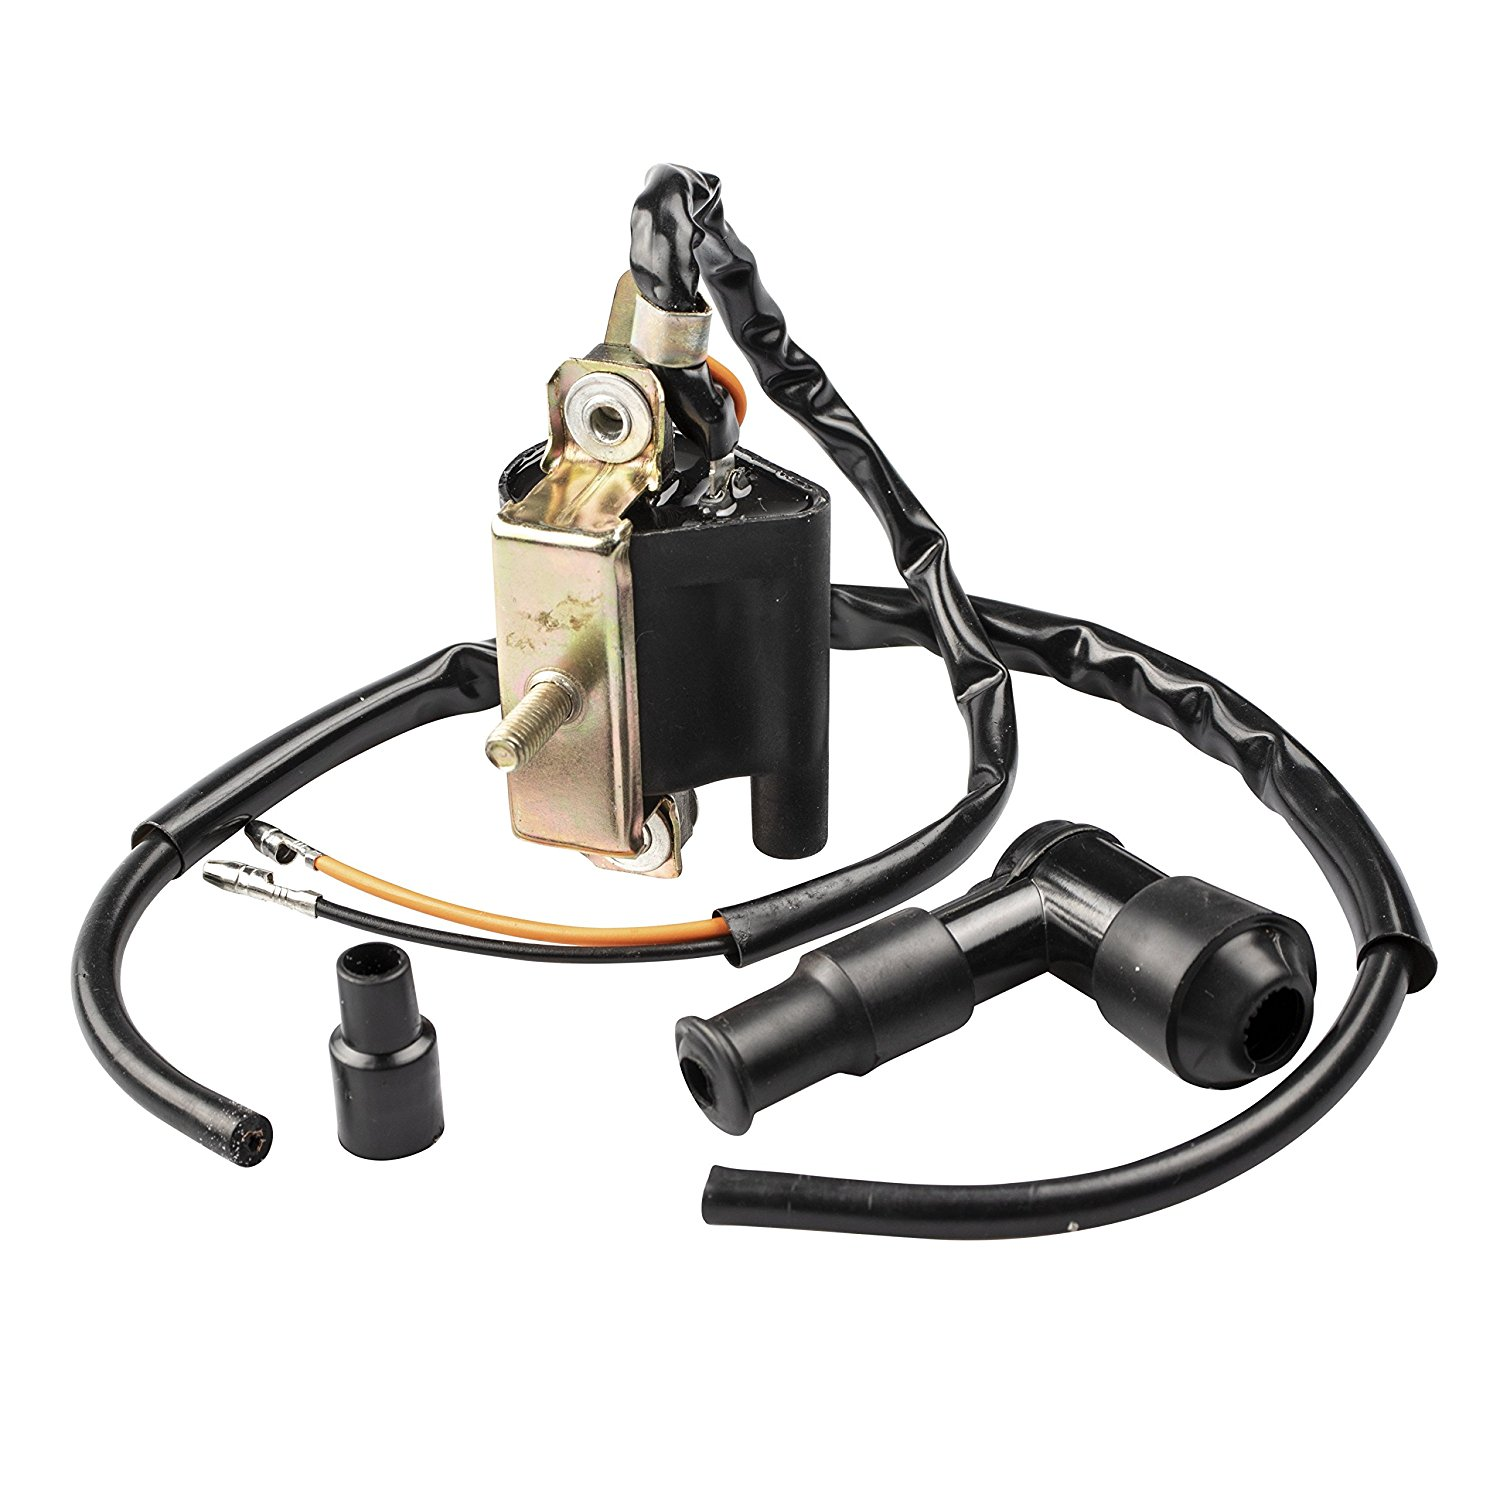 hight resolution of get quotations 2wc ignition coil for baja atv 49cc 50cc 49 50 ba50 dirt bike dr49